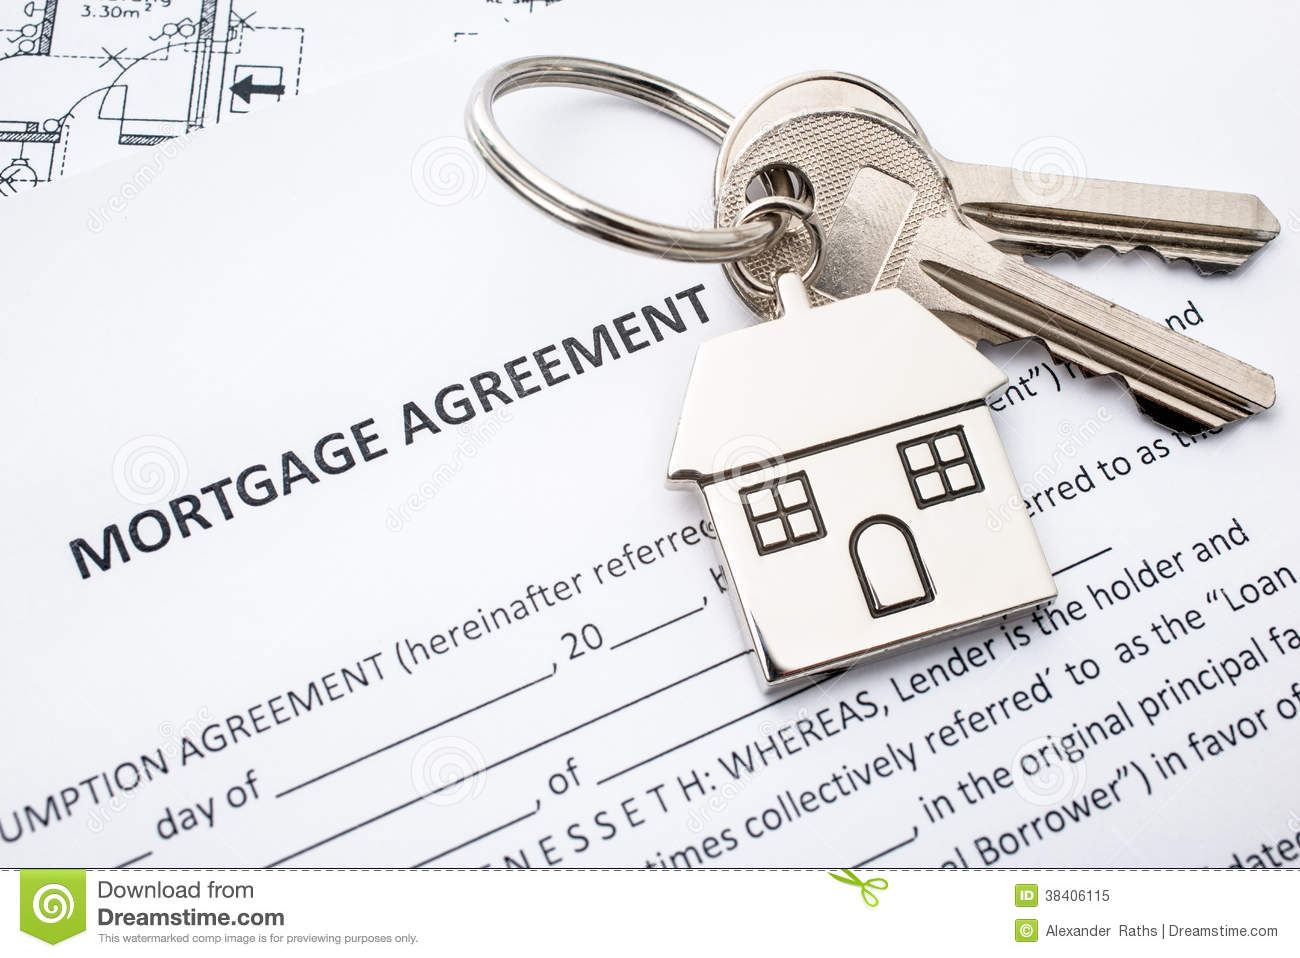 Find Out More About Mortgage Loan Application Checklist